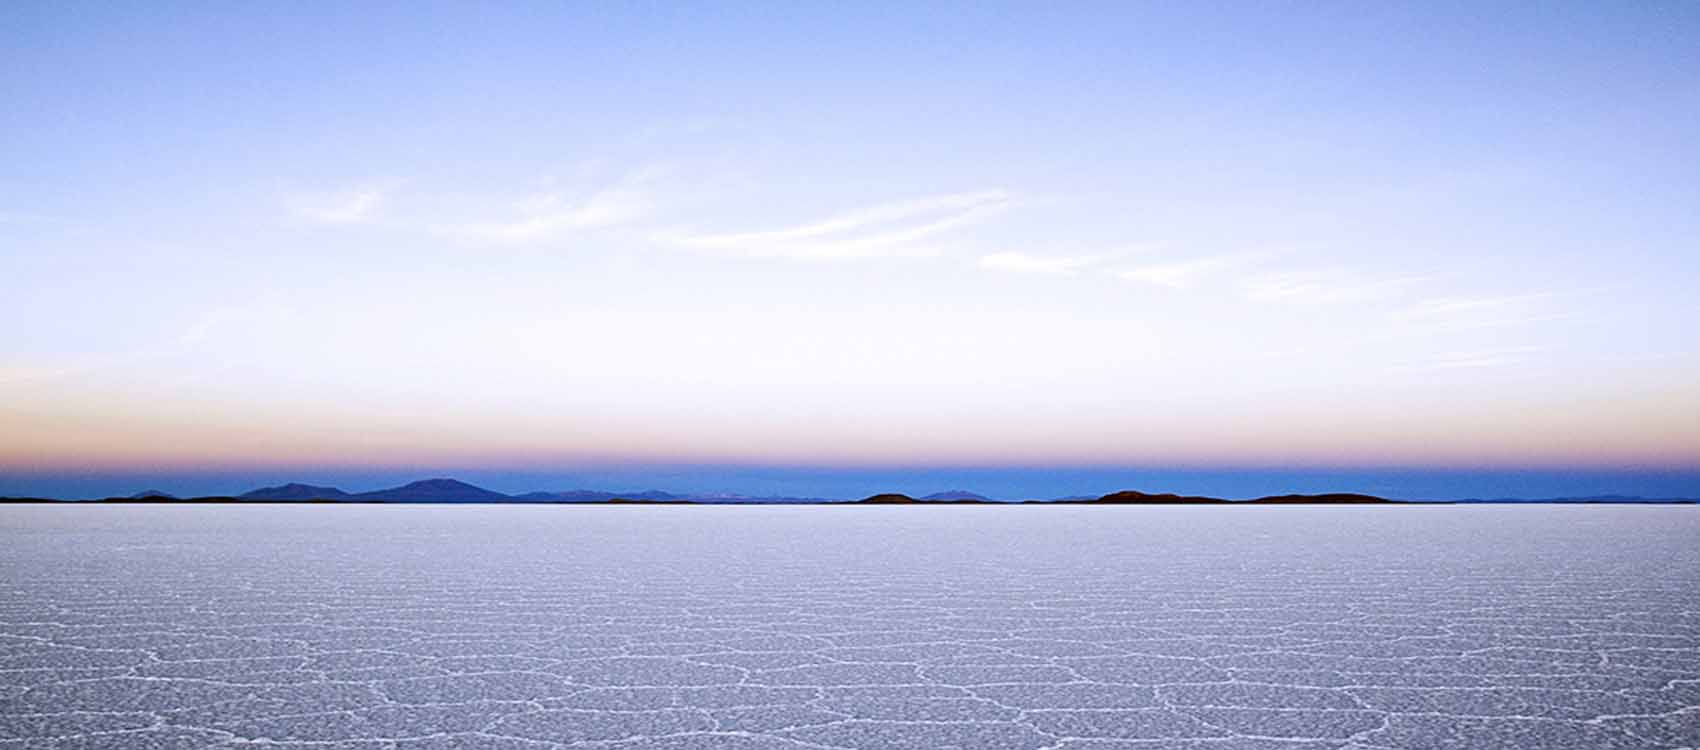 Salt Lakes in Iran,Iran